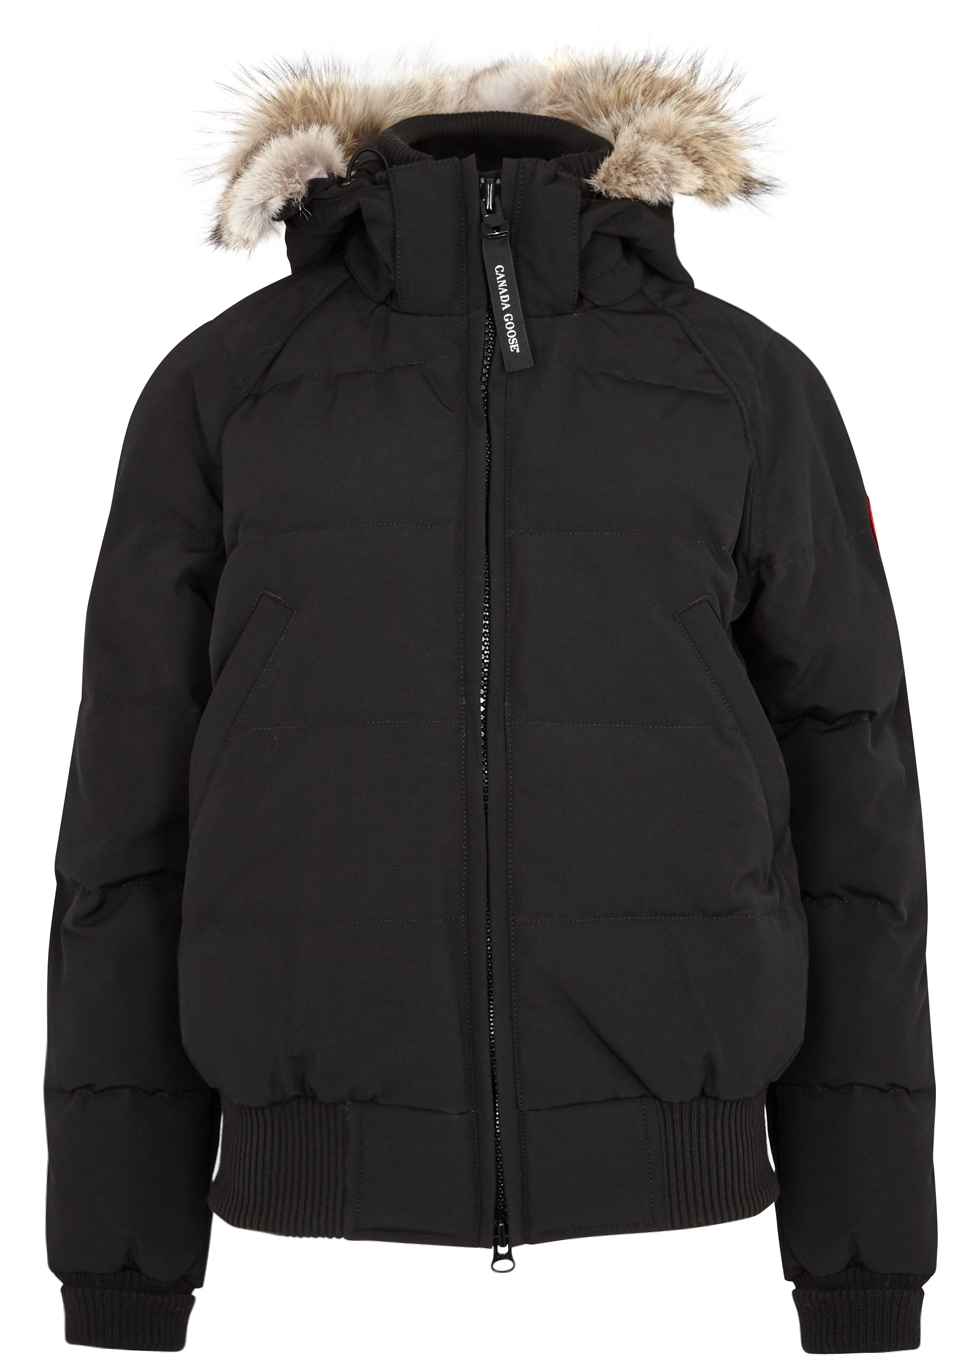 canada goose parka or bomber